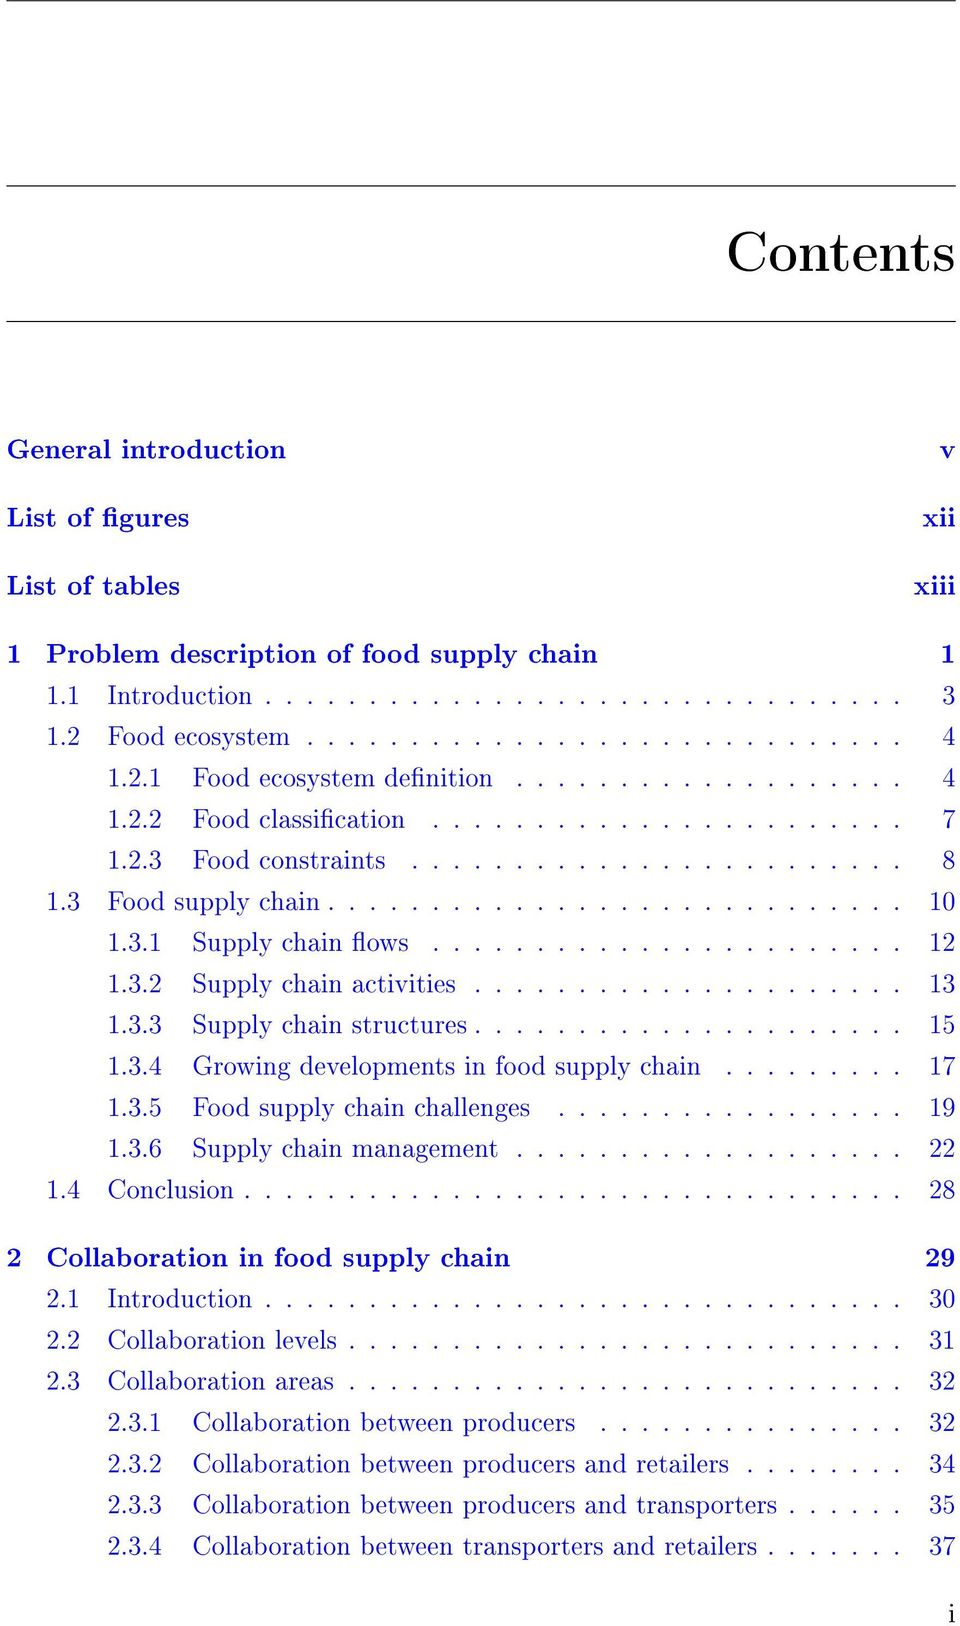 3.1 Supply chain ows....................... 12 1.3.2 Supply chain activities..................... 13 1.3.3 Supply chain structures..................... 15 1.3.4 Growing developments in food supply chain.